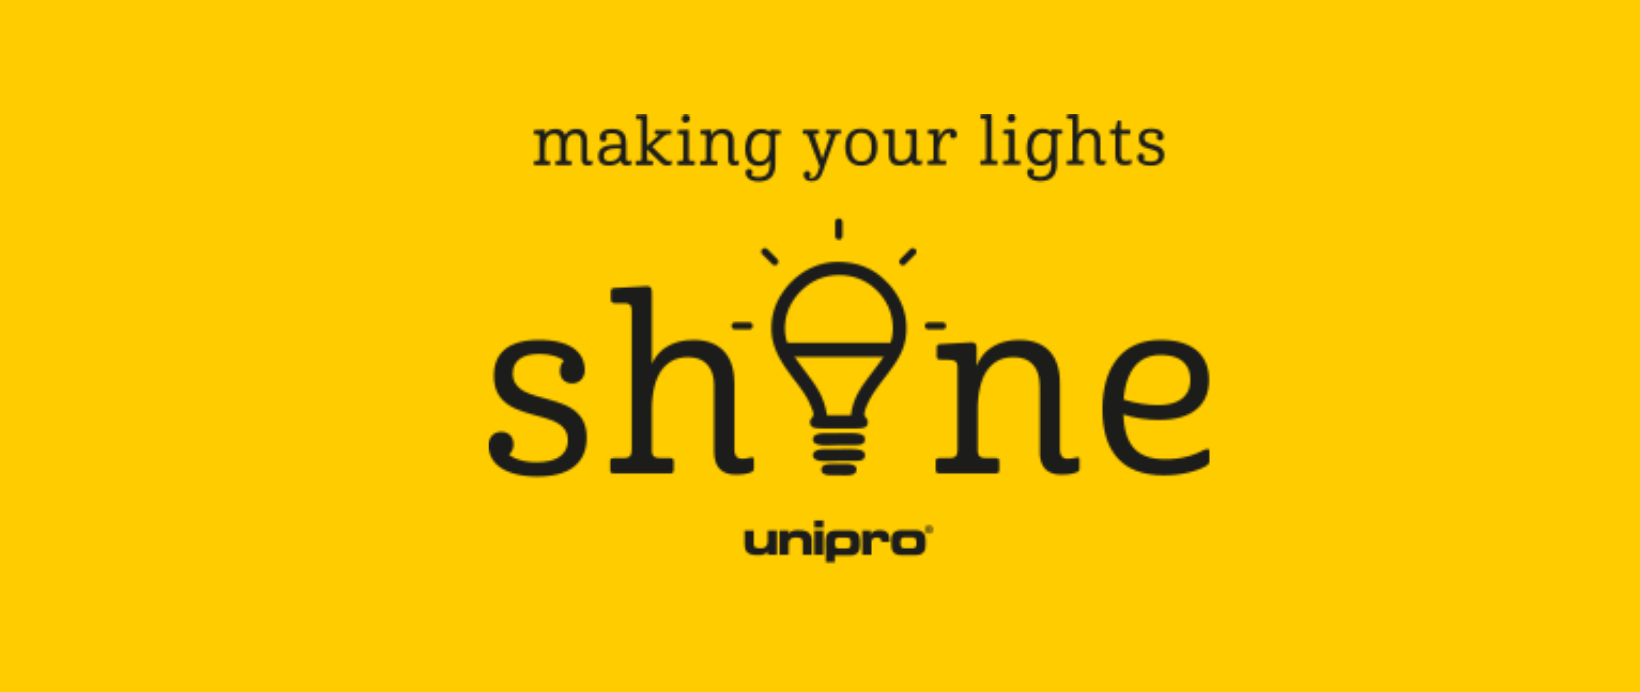 unipro - Making your lights shine